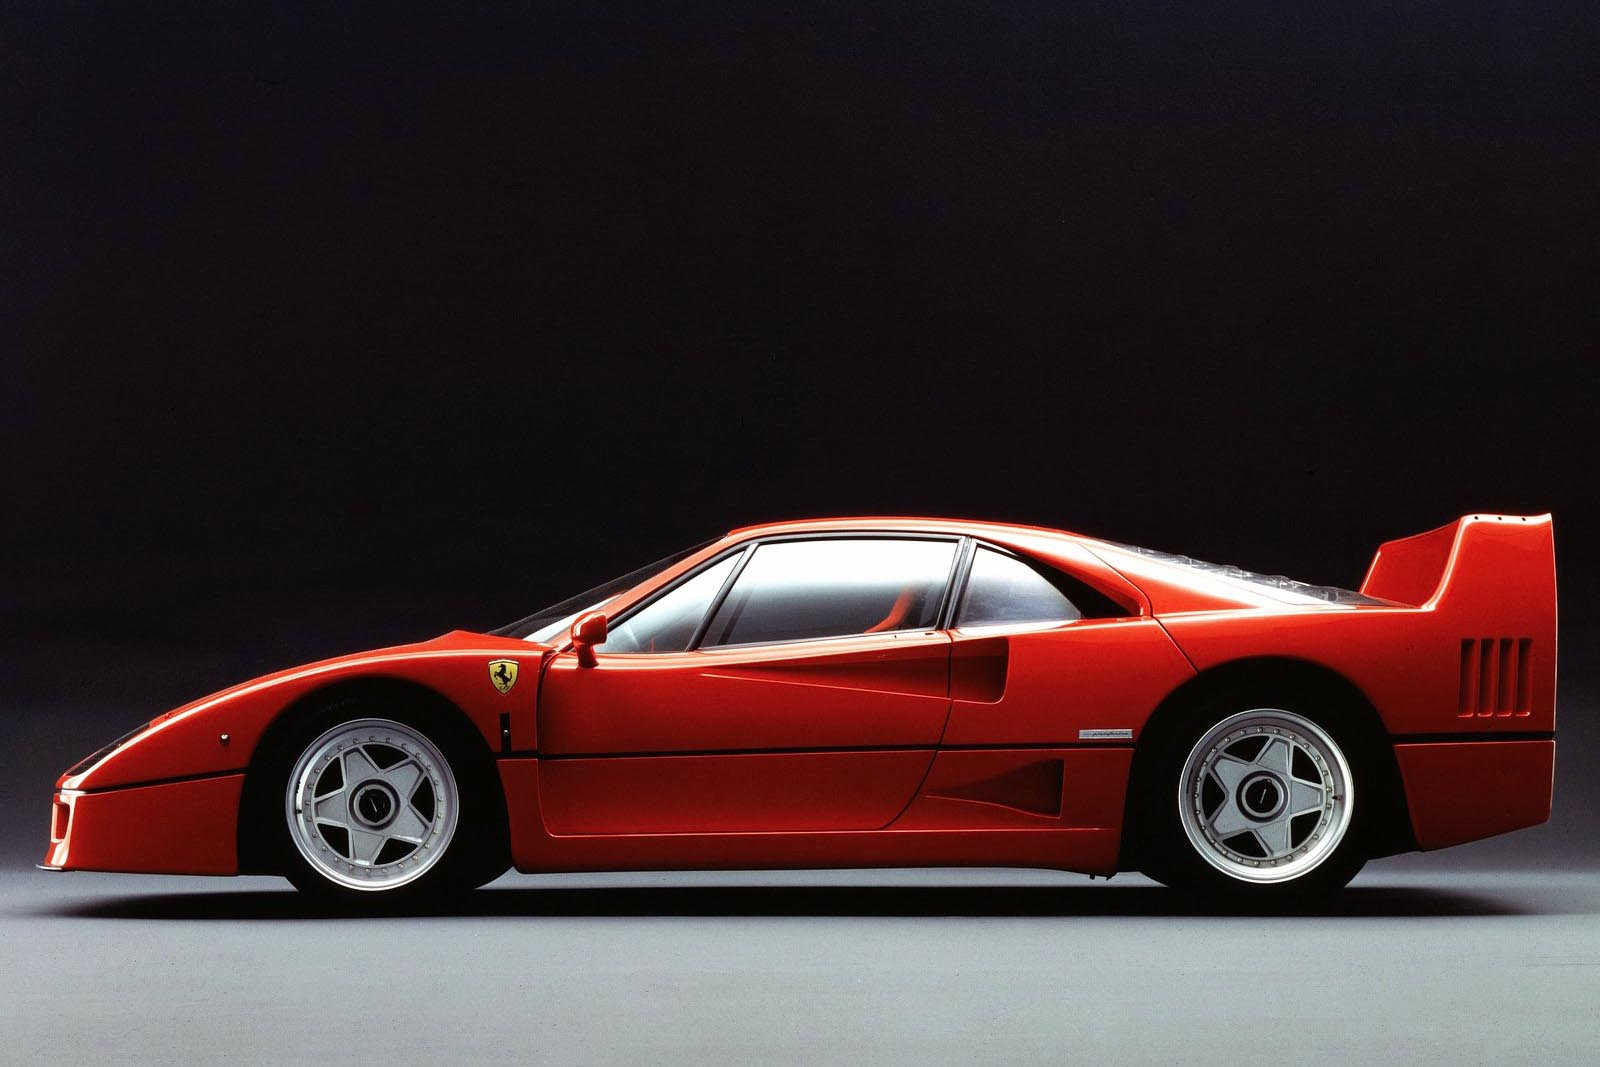 Dear Ferrari: thanks for being Italian, being pretty sweet, and making cars we listen to on YouTube when the boss is distracted by the Keurig for a latte refill. Thanks, also, for the F40. We love its little boosted V8, how the exhaust sounds like a Velociraptor's mating call, and the mental image of ripping through its gears like Christmas-morning wrapping paper. Still said to be the world's best supercar, we're glad this machine helped set the stage for the great supercars that we lust after today.